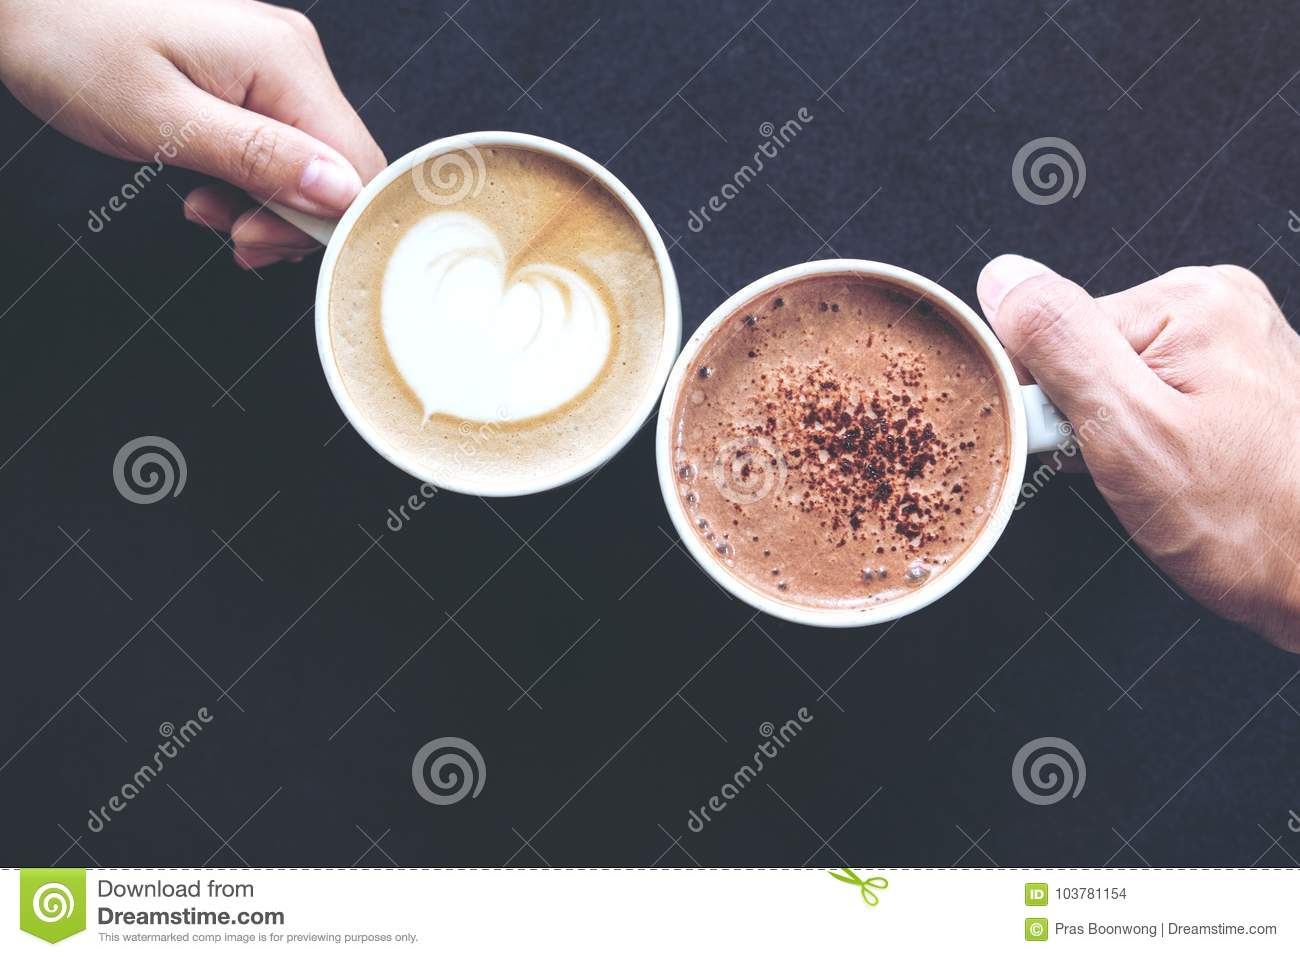 Top view image of man and woman`s hands holding coffee and hot chocolate cups